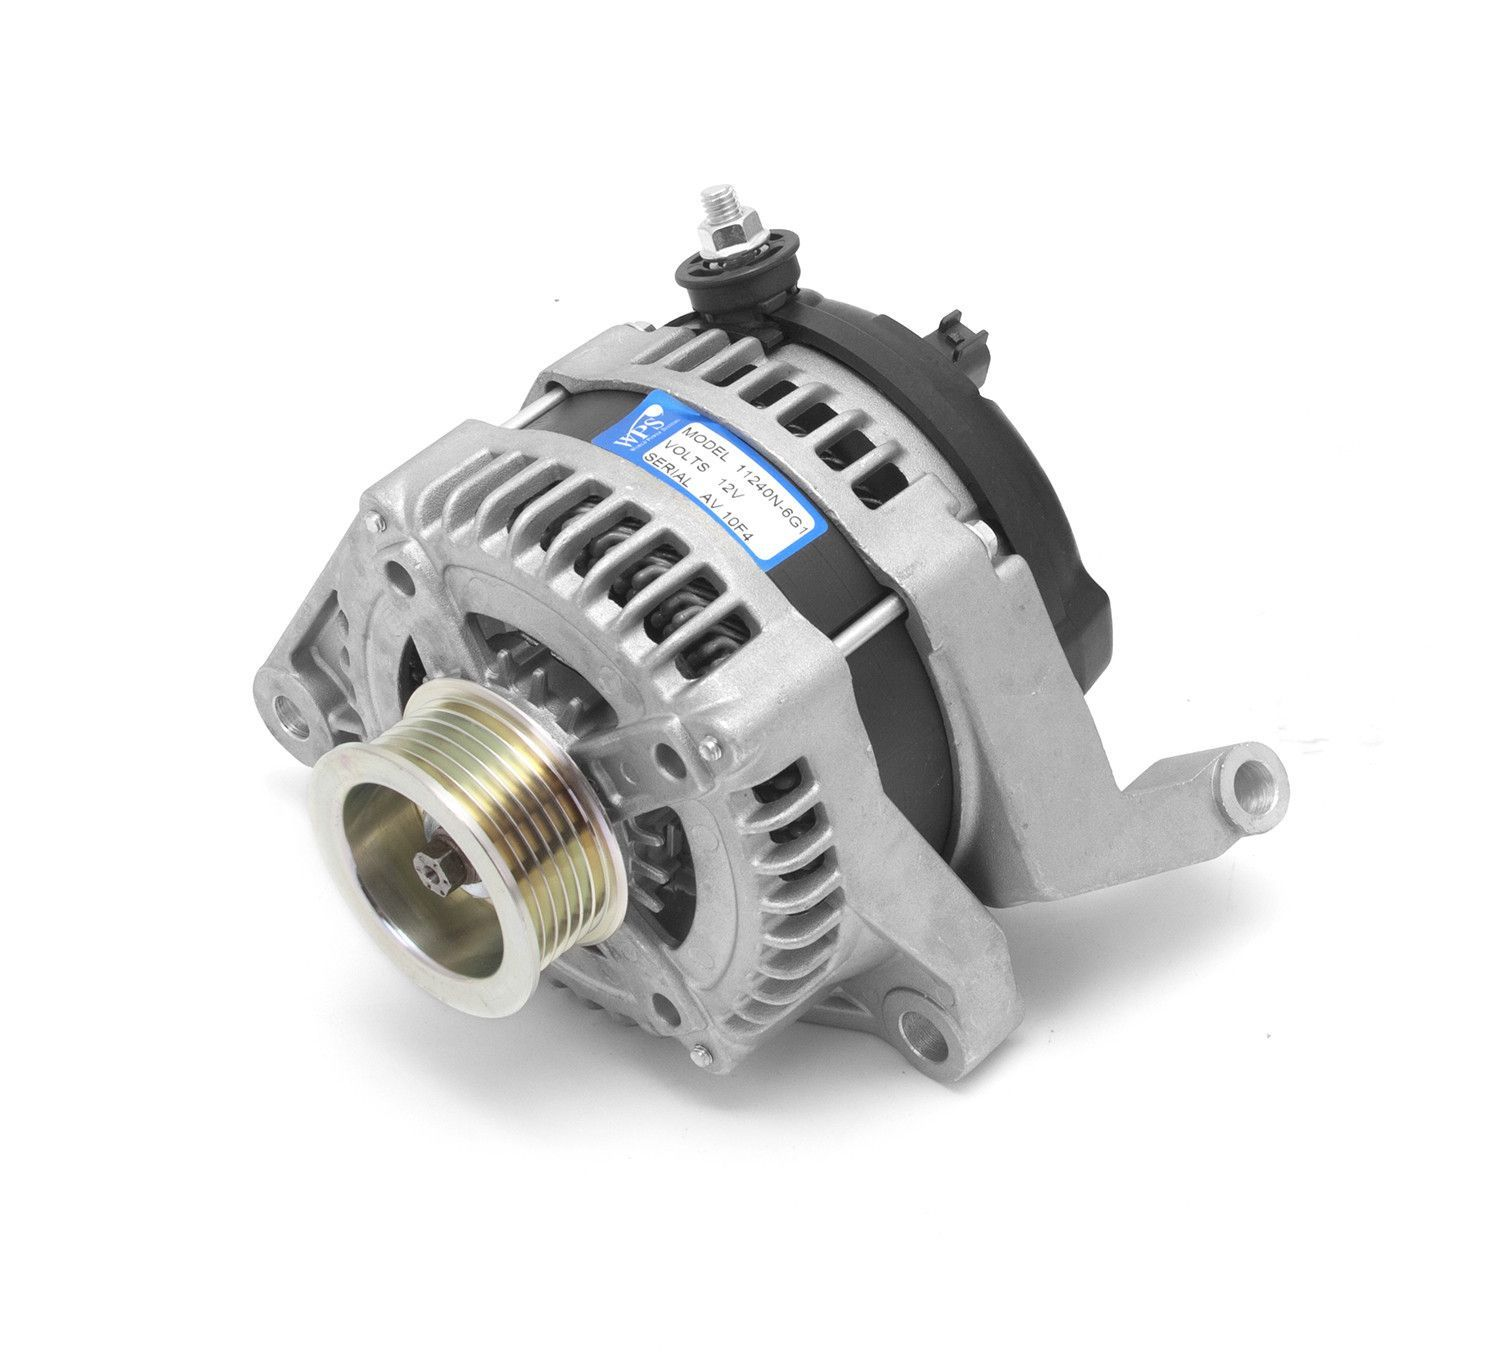 Buy alternator 160 amp 3 8l 03 09 jeep liberty kj at get4x4parts com for only 424 00